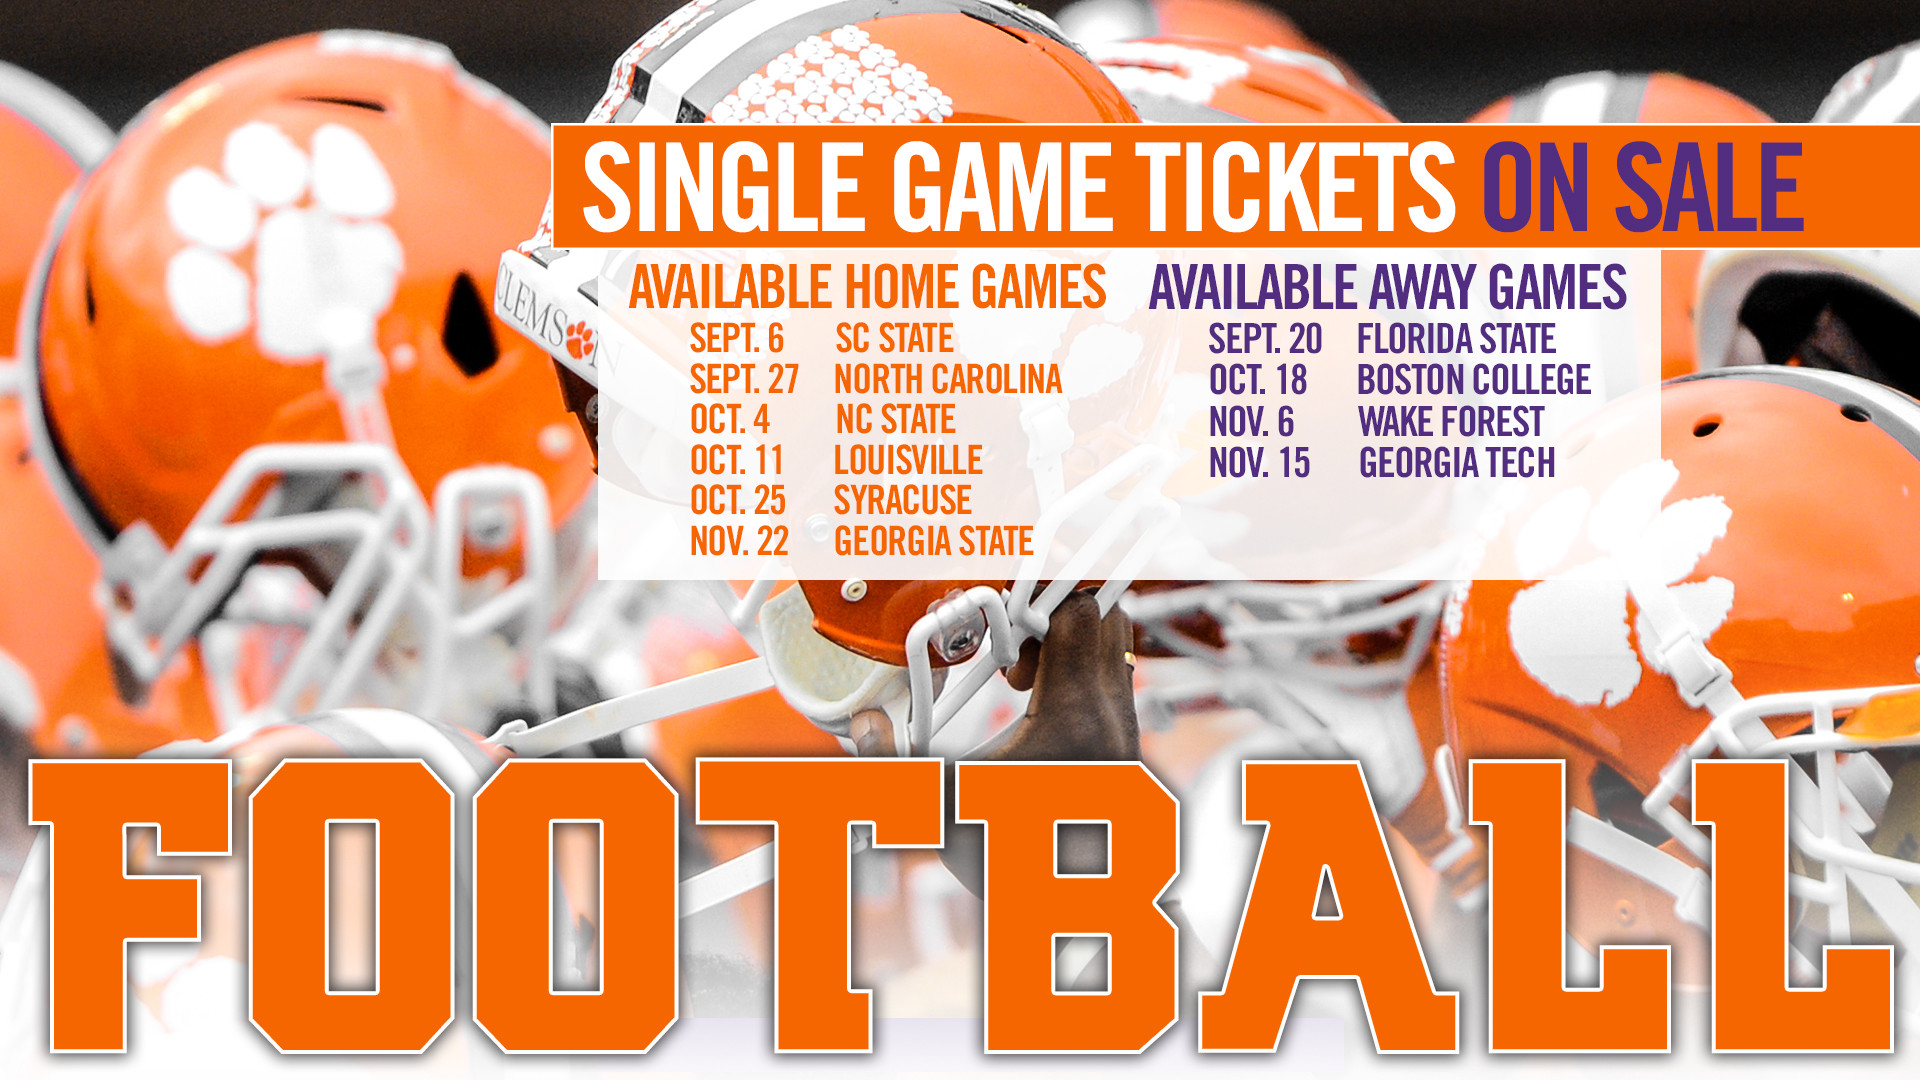 Season Tickets Sold Out; Single Game On Sale Now